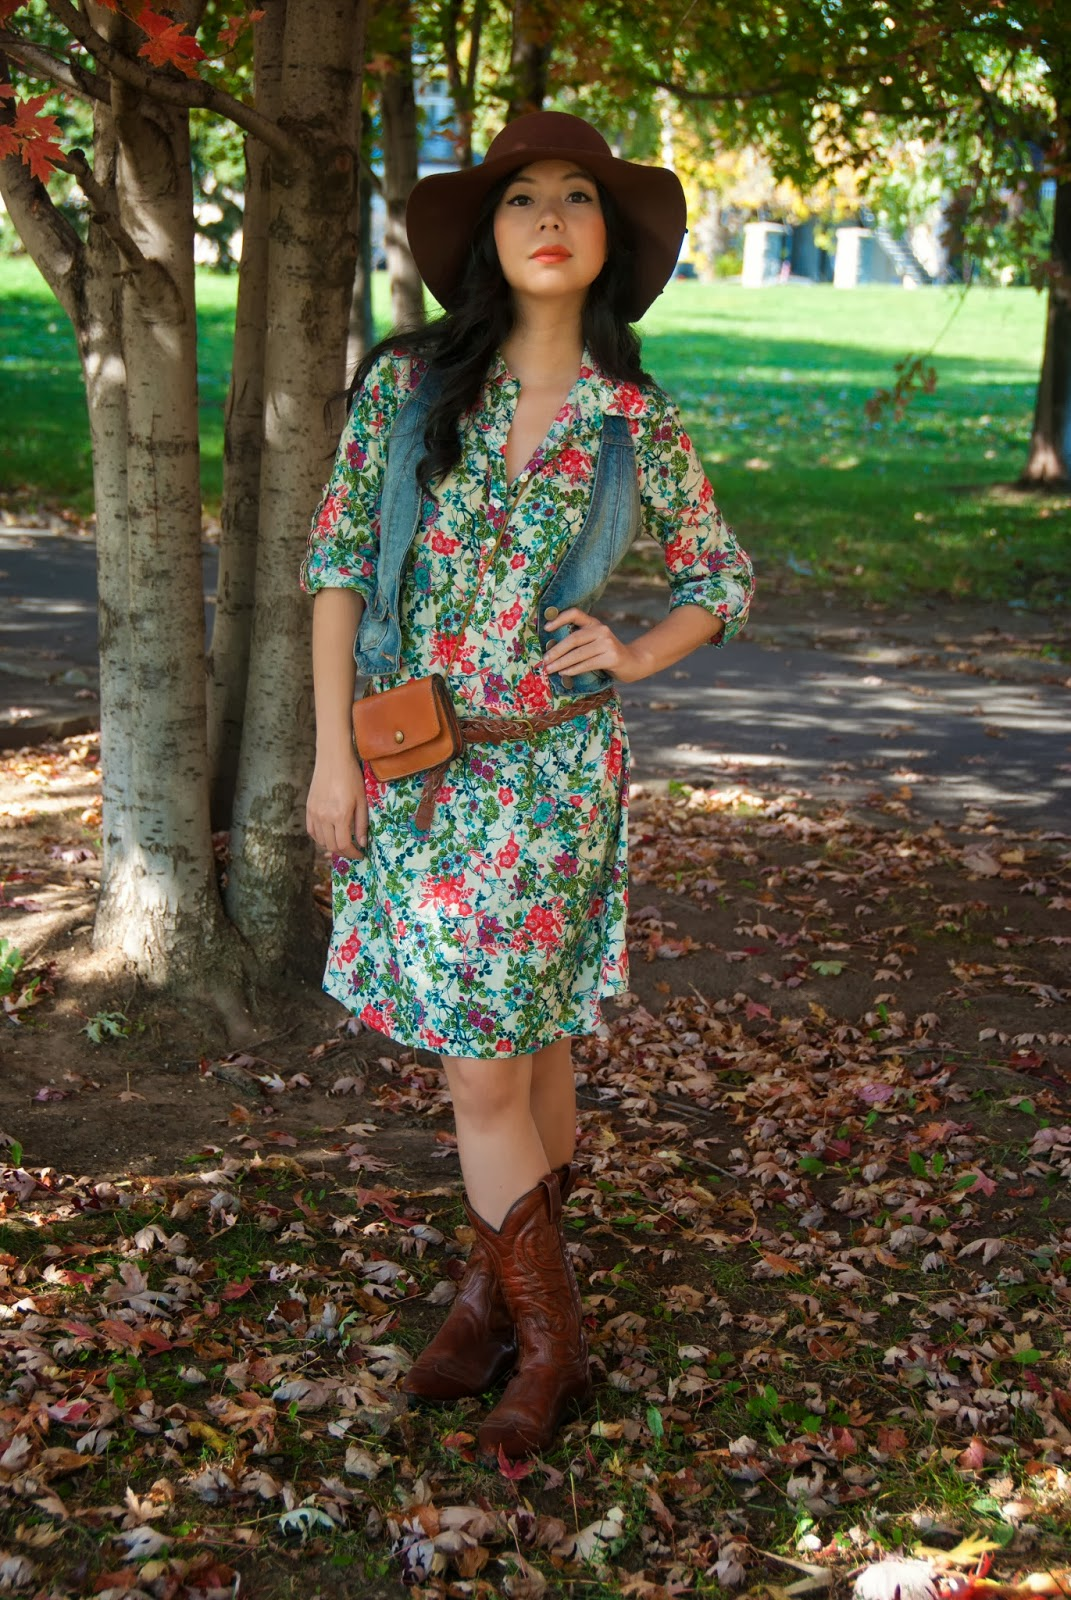 floral shirtdress braided belt leather pouch purse cowboy boots floppy felt hat jean vest denim autumn